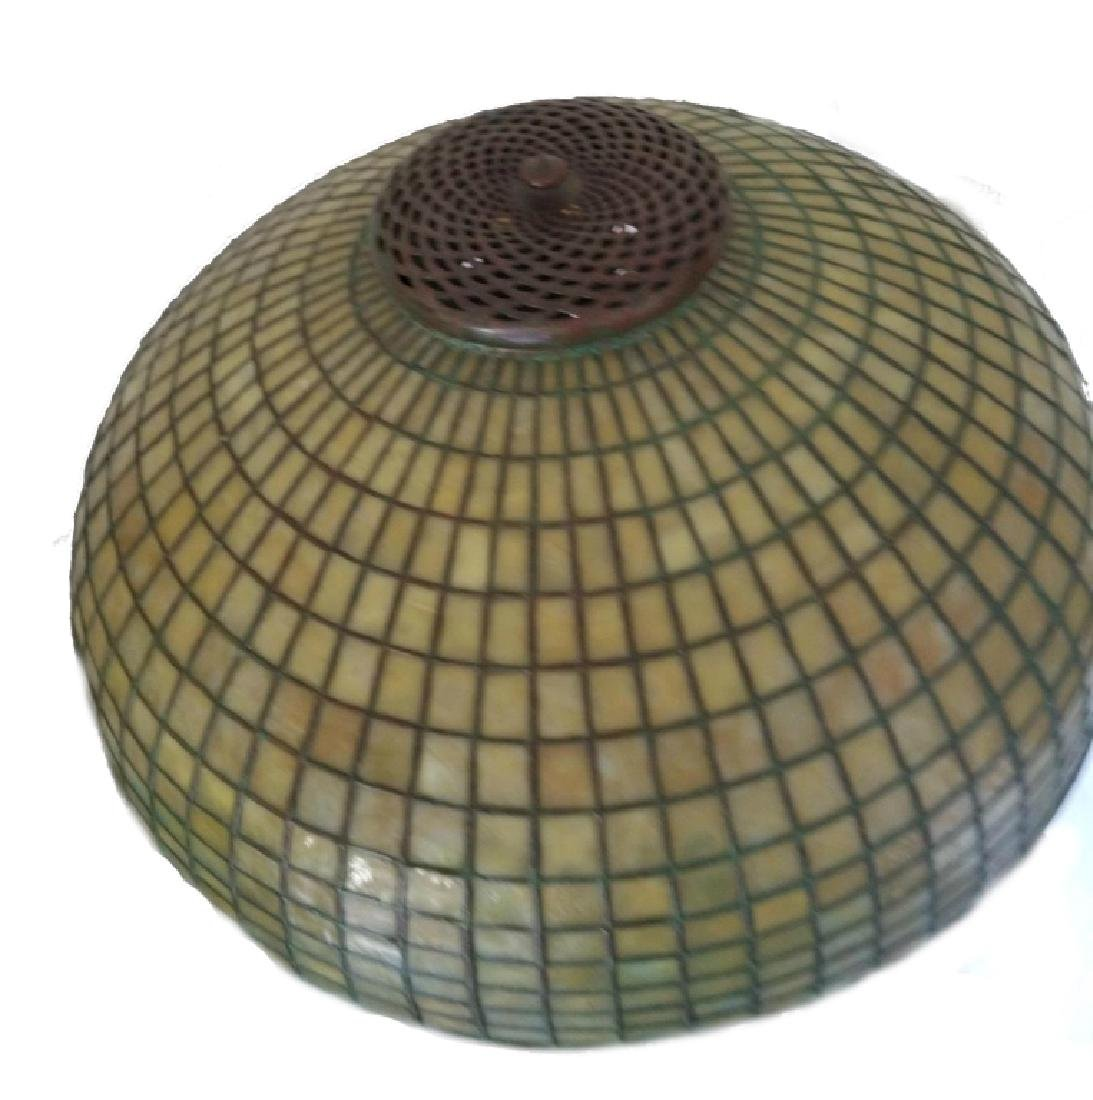 TIFFANY STUDIOS NYC LAMP SHADE WITH BASE - 5